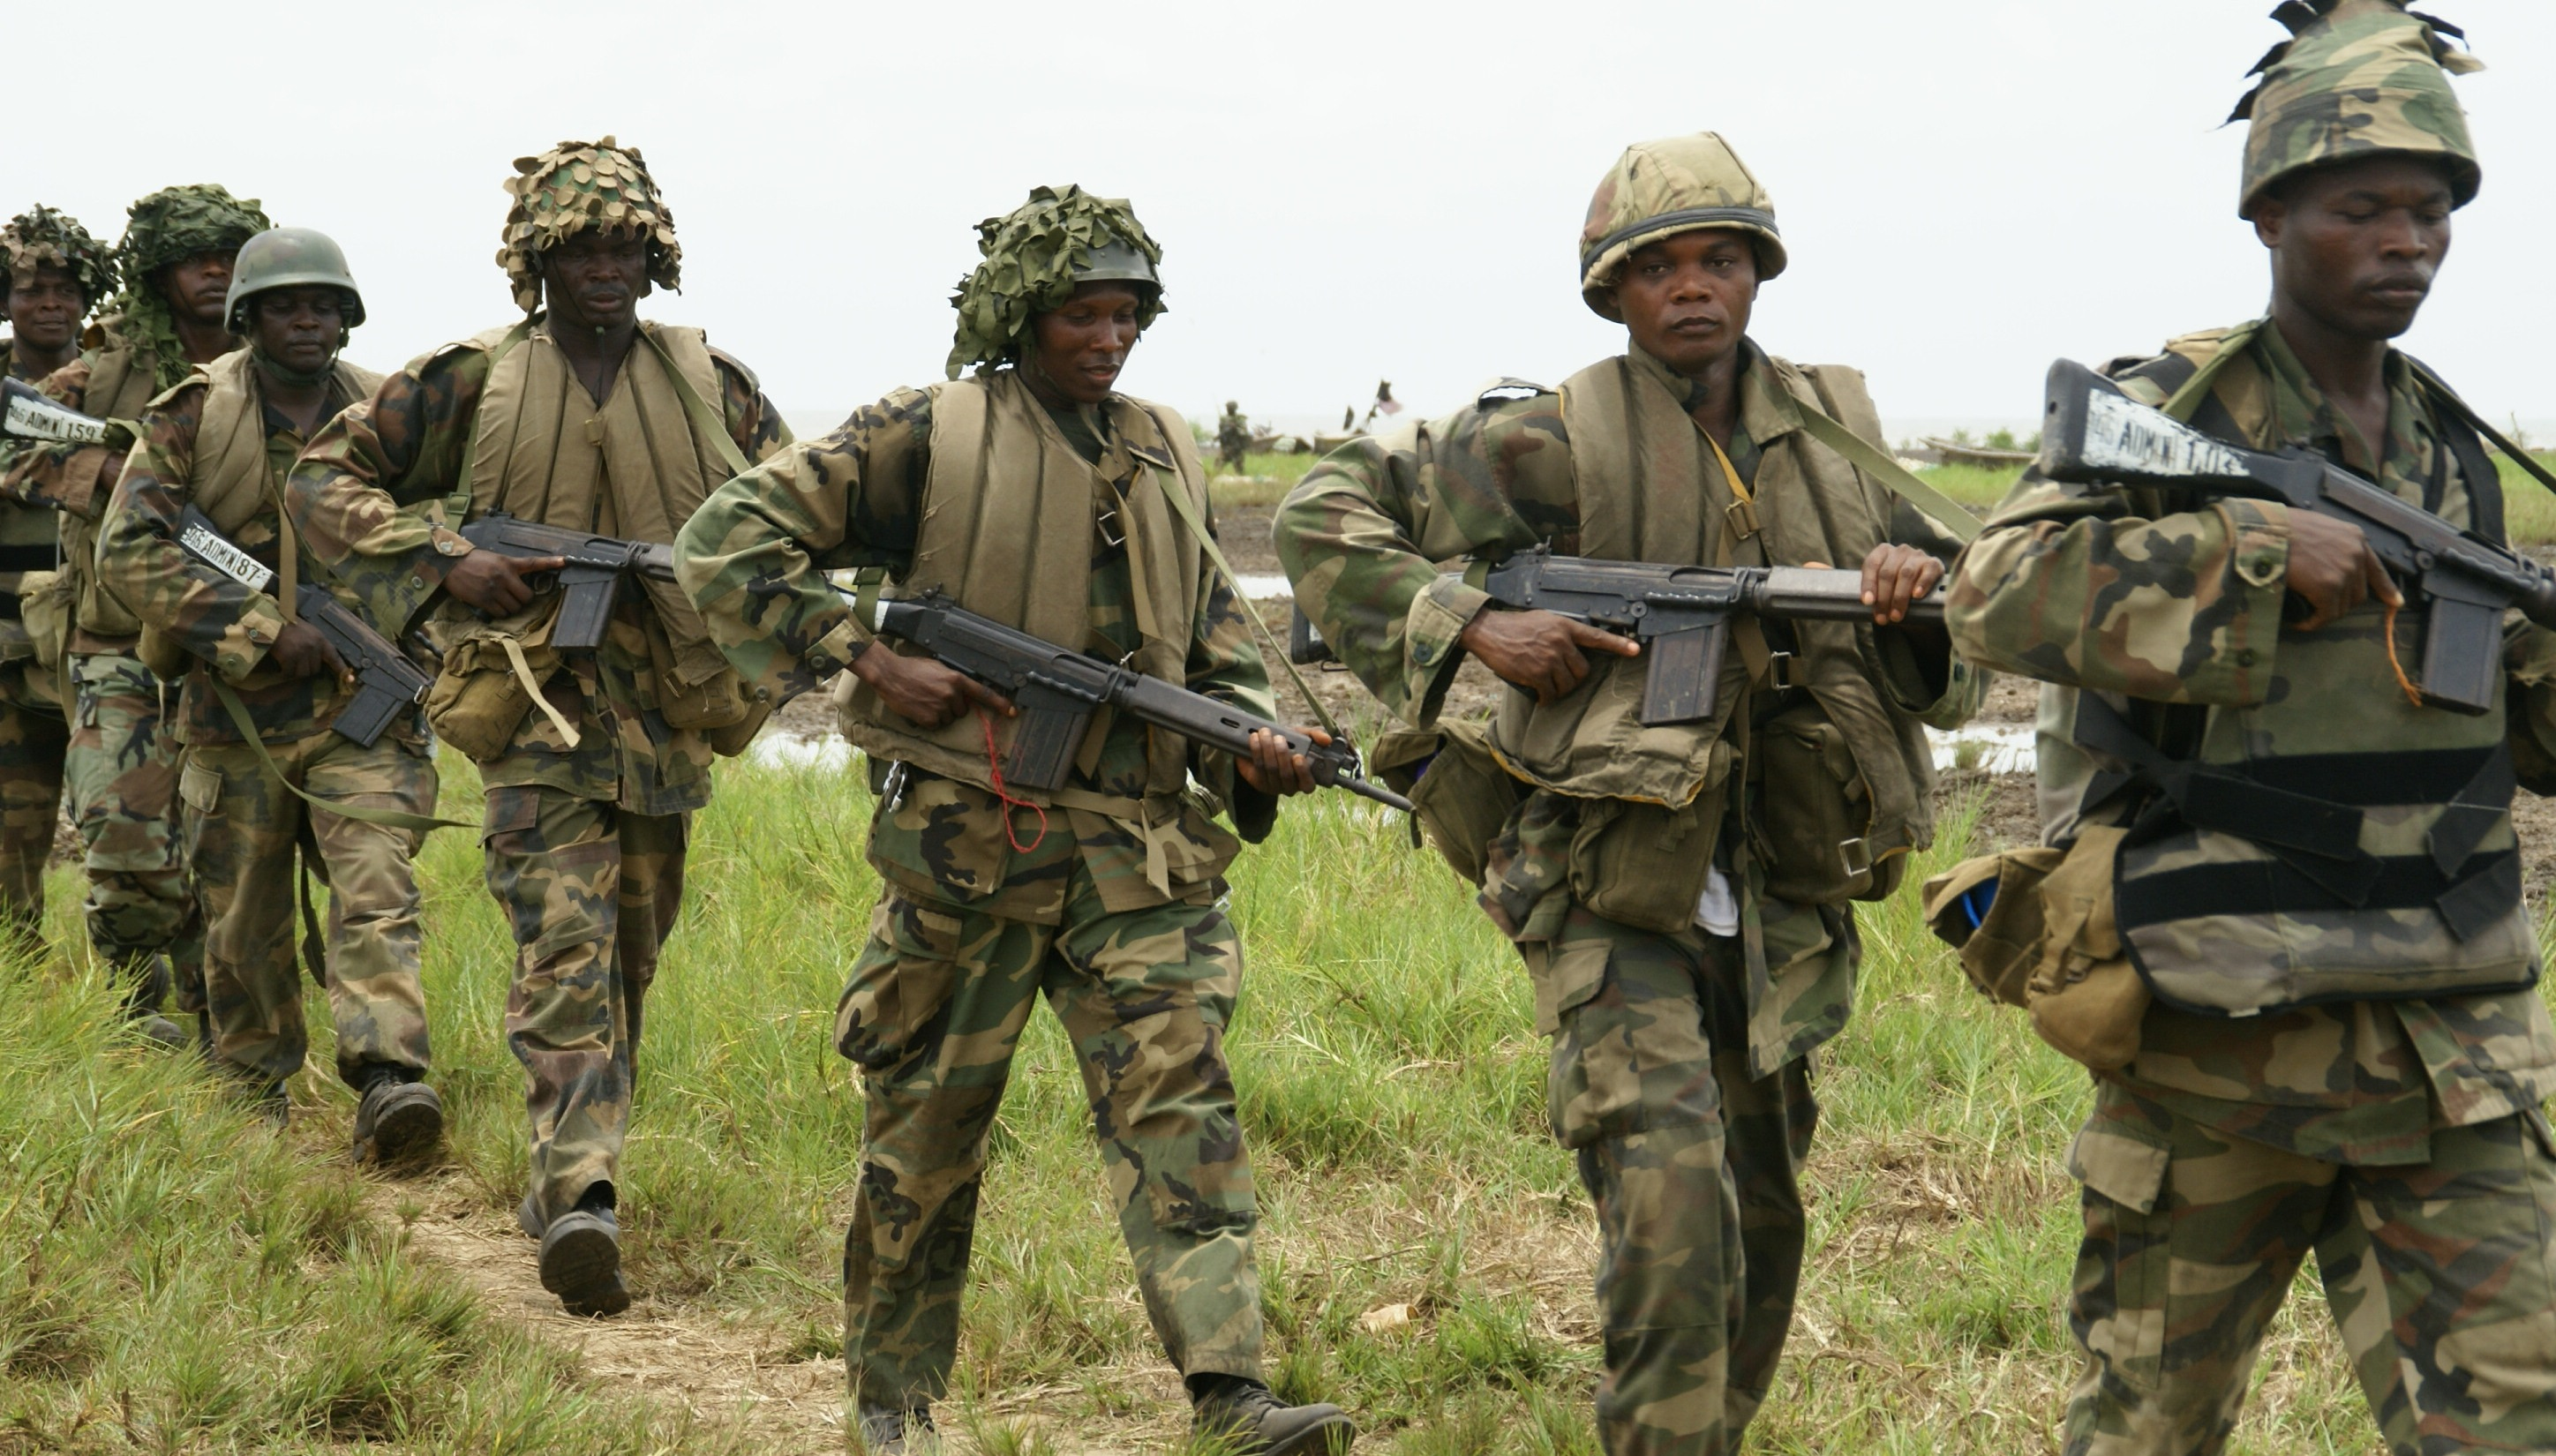 Boko Haram: 70 soldiers face court martial